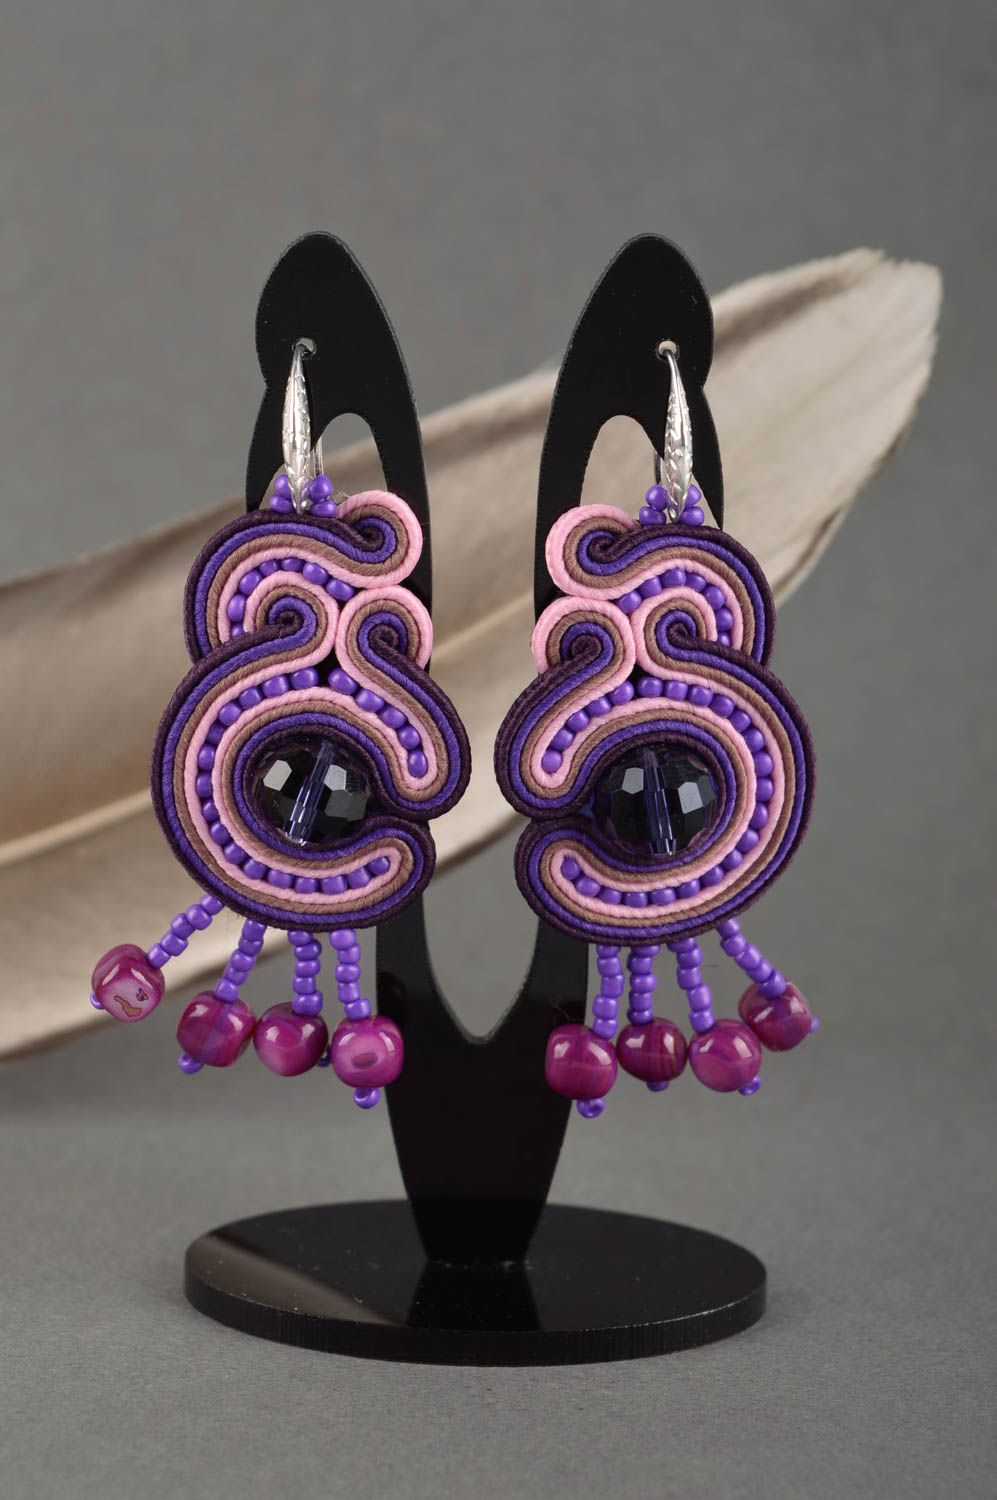 Large handmade soutache earrings textile earrings beaded earrings gift ideas photo 1